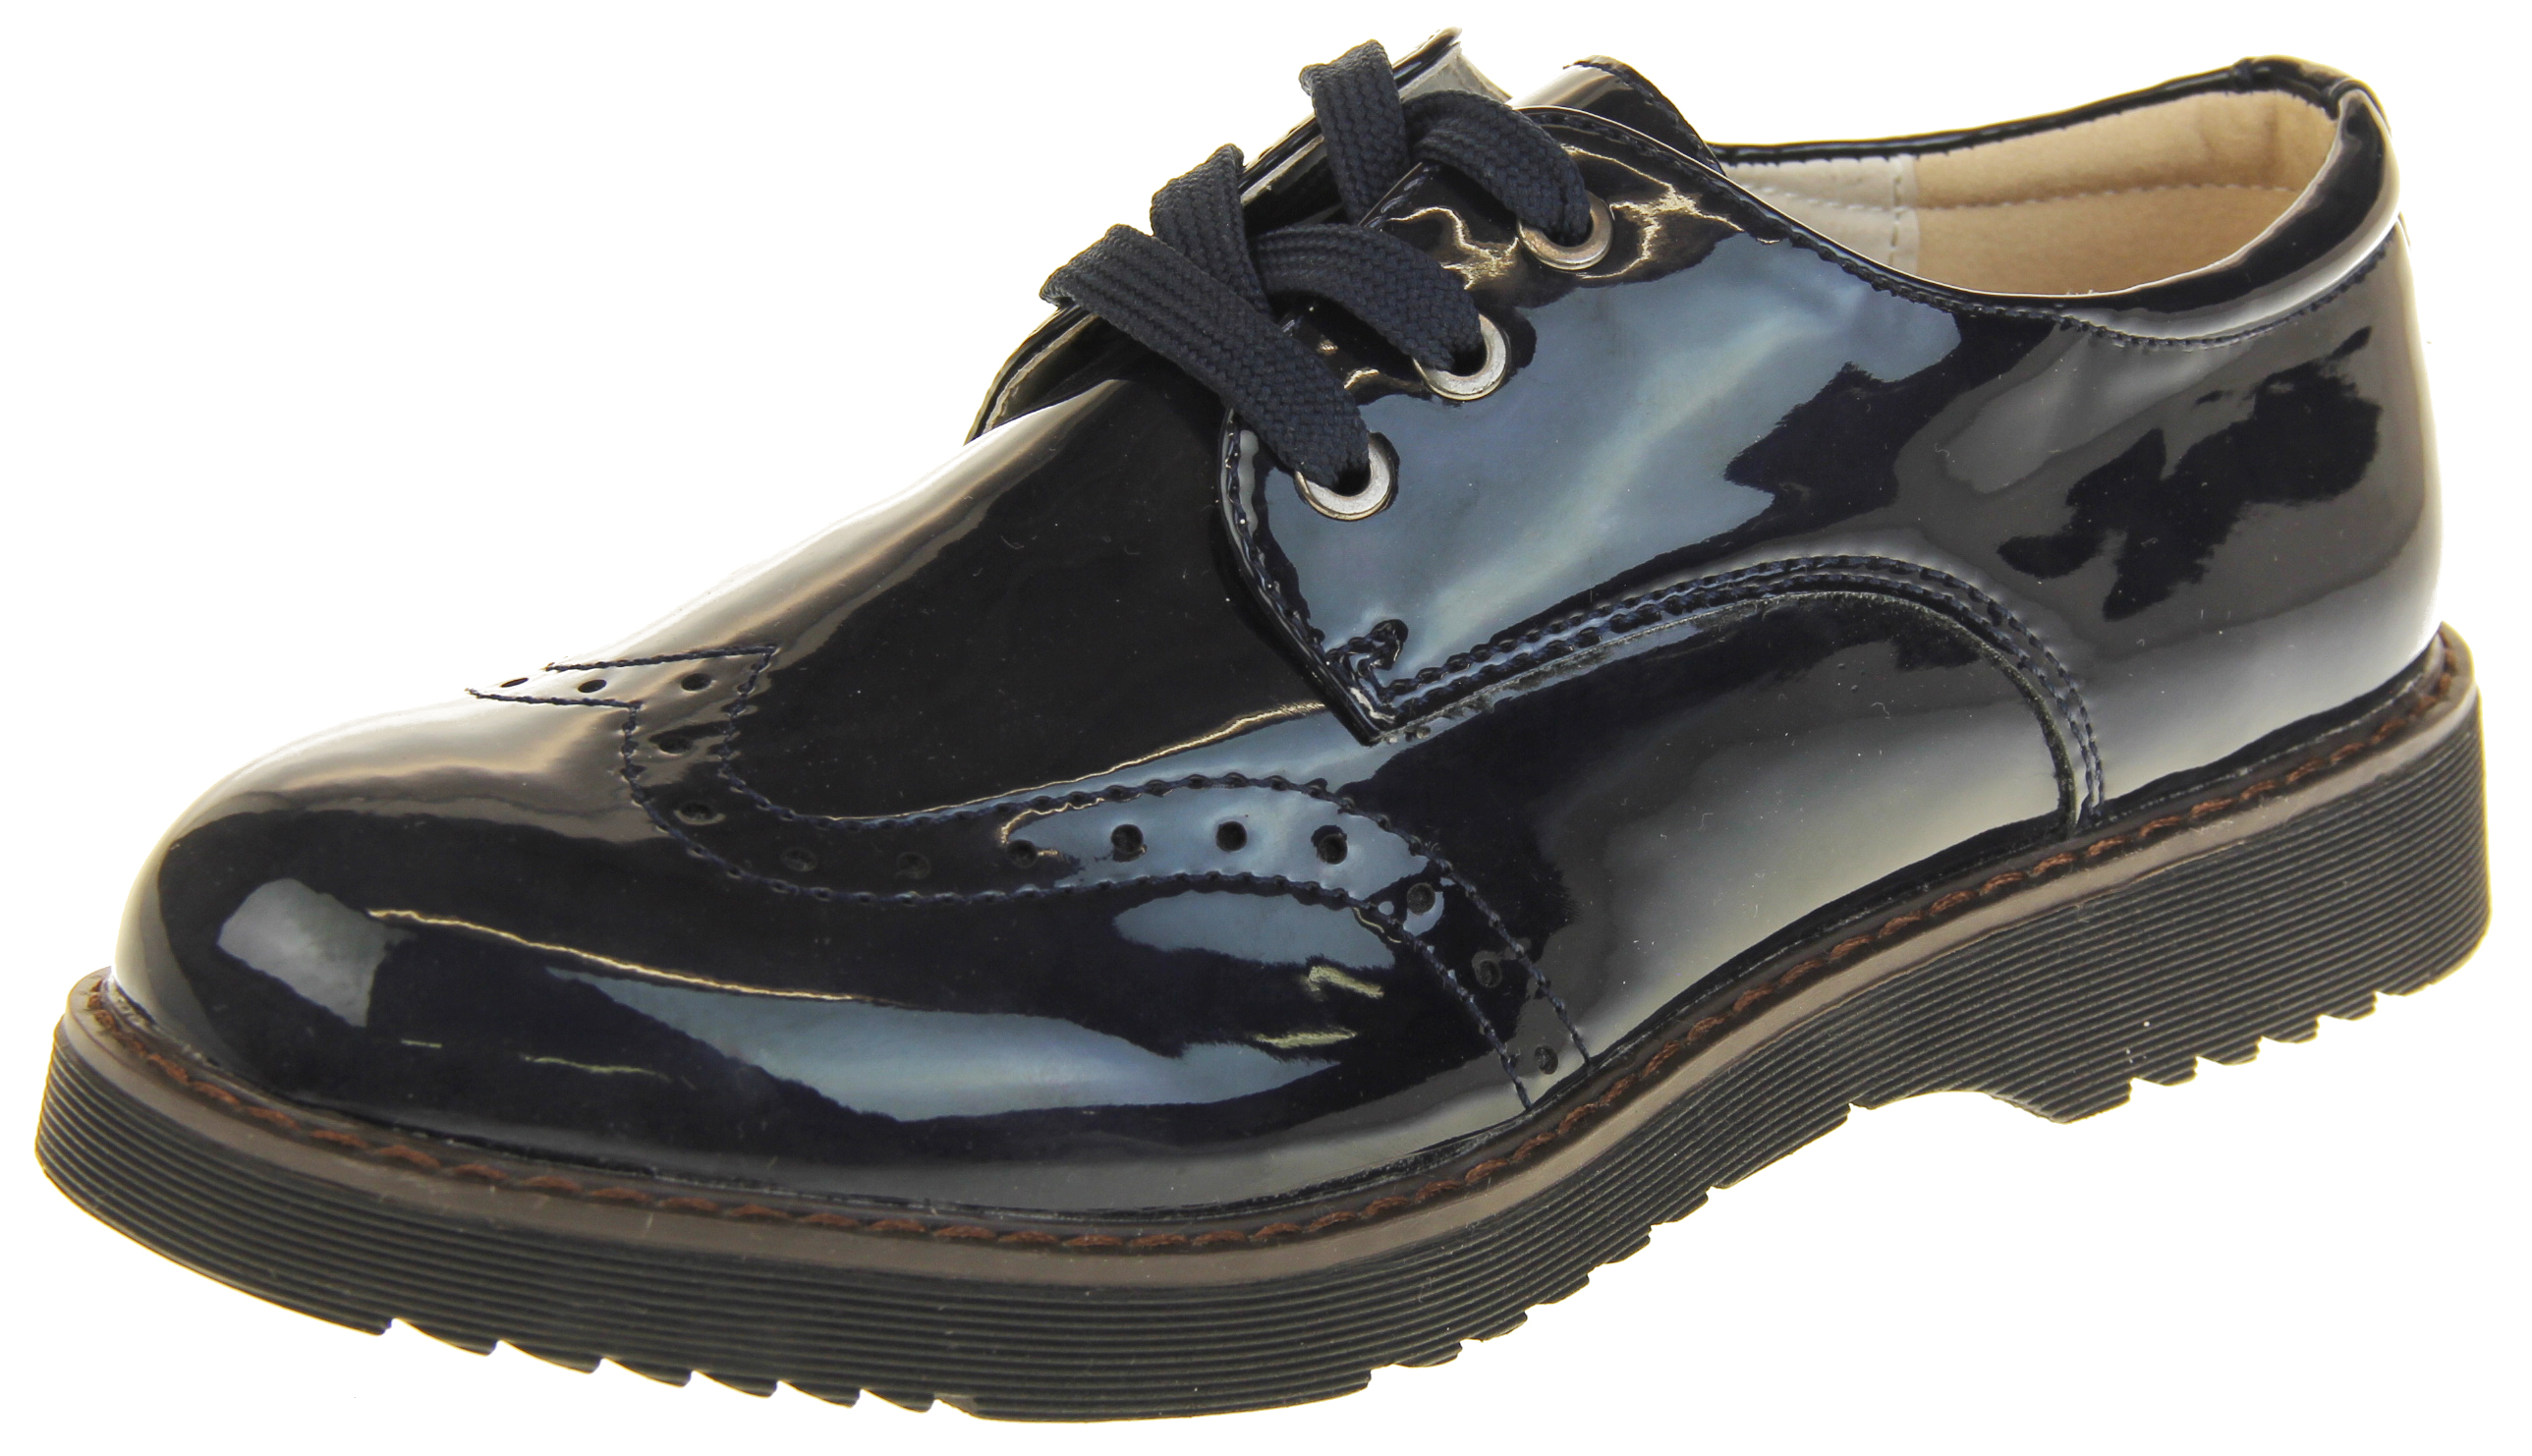 Womens Las Keddo Patent Leather Flat Loafers Brogues Work Office Shoes